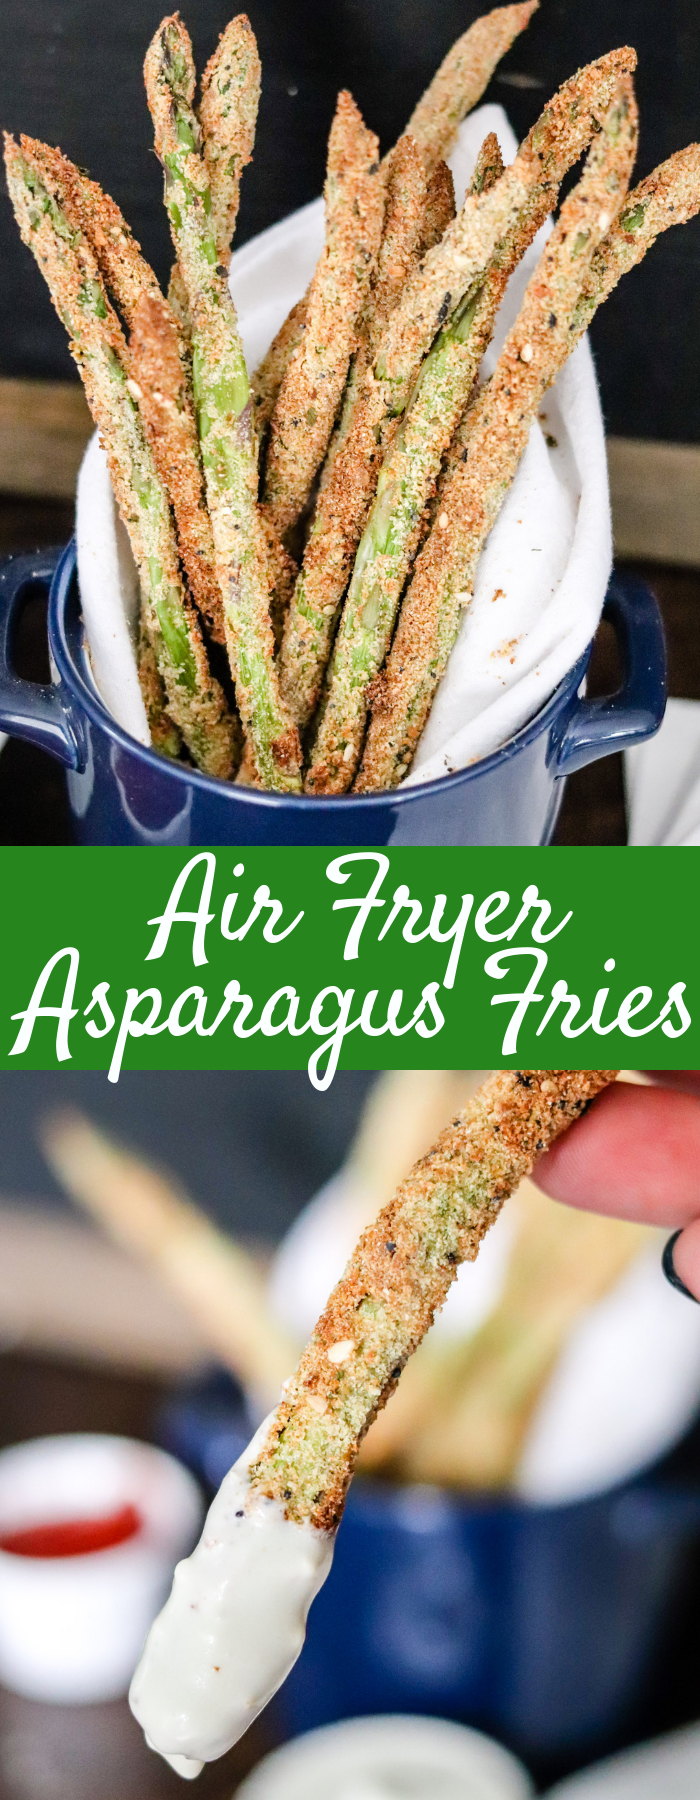 With less than 5 ingredients, NO oil, and done in less than 10 minutes, these Air Fryer Asparagus Fries will become a favorite side dish or snack!